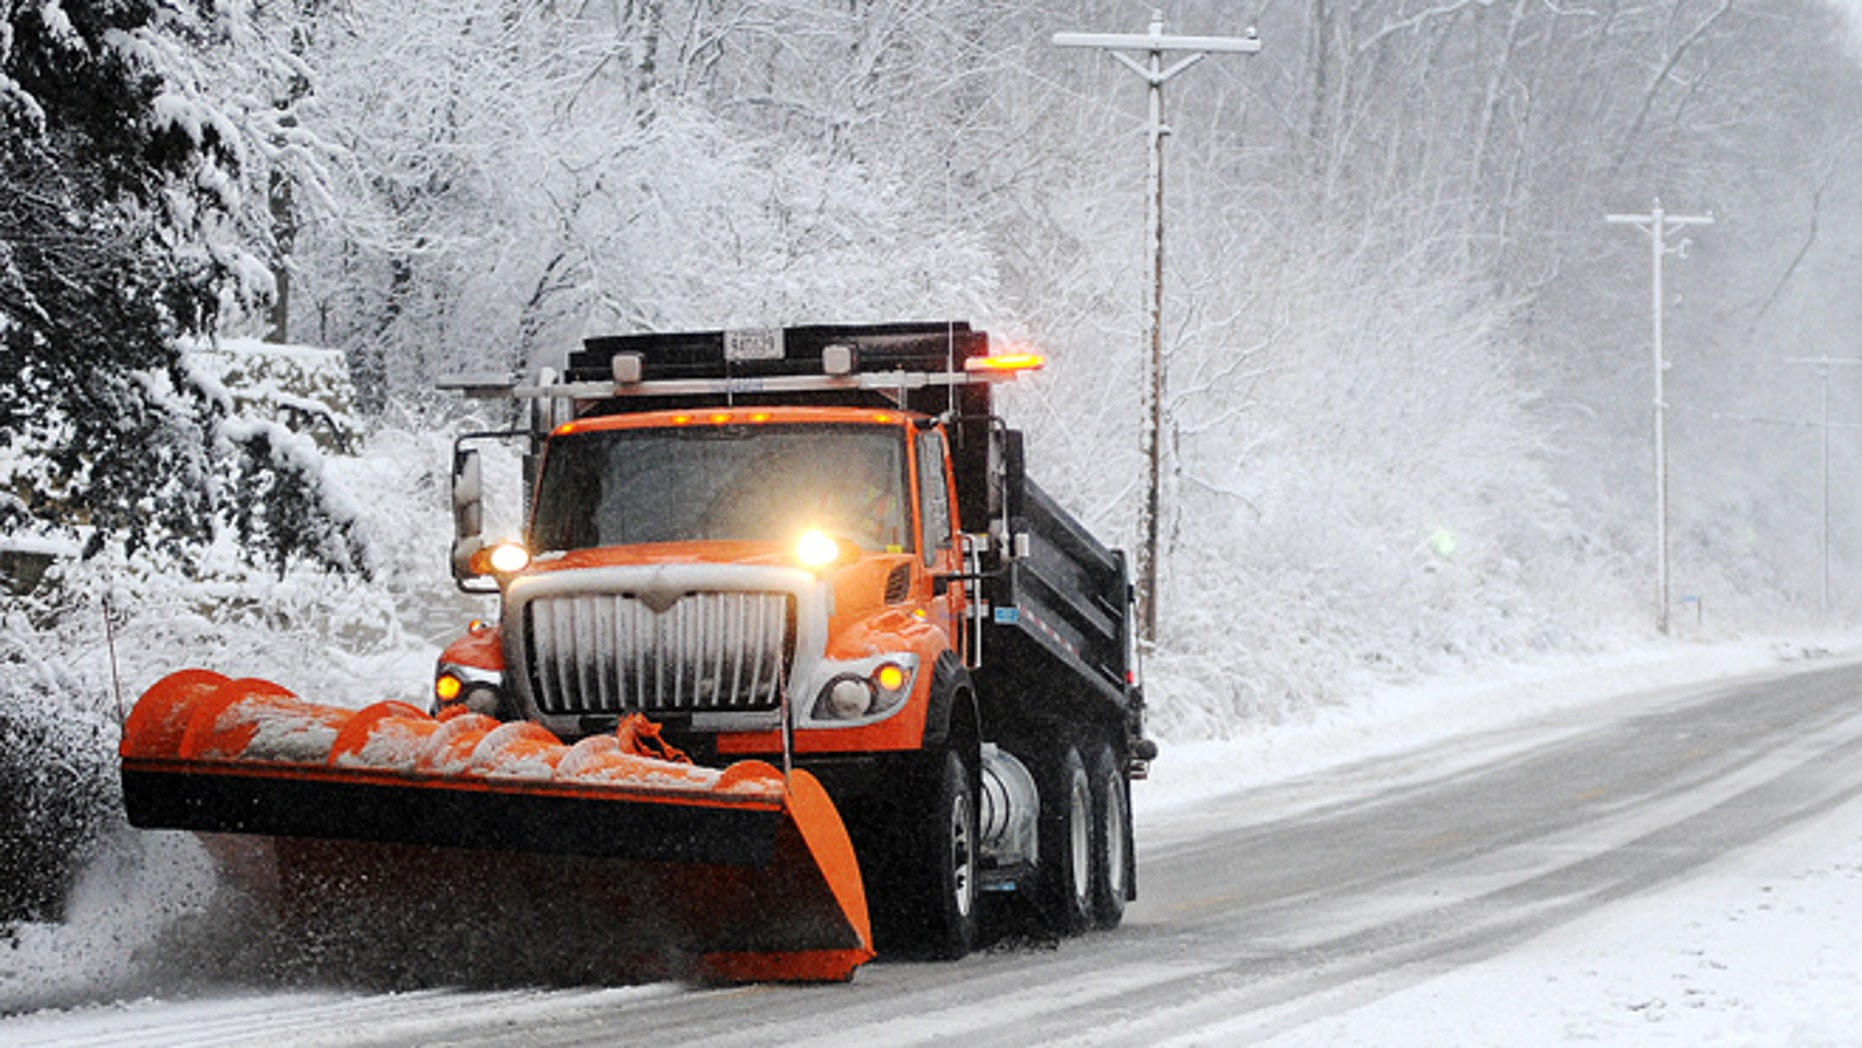 Dec. 9, 2012: A snow plow clears off Old Homer Road, near Winona, Minn. The National Weather Service is predicting a total accumulation of five to 10 inches by Monday morning.